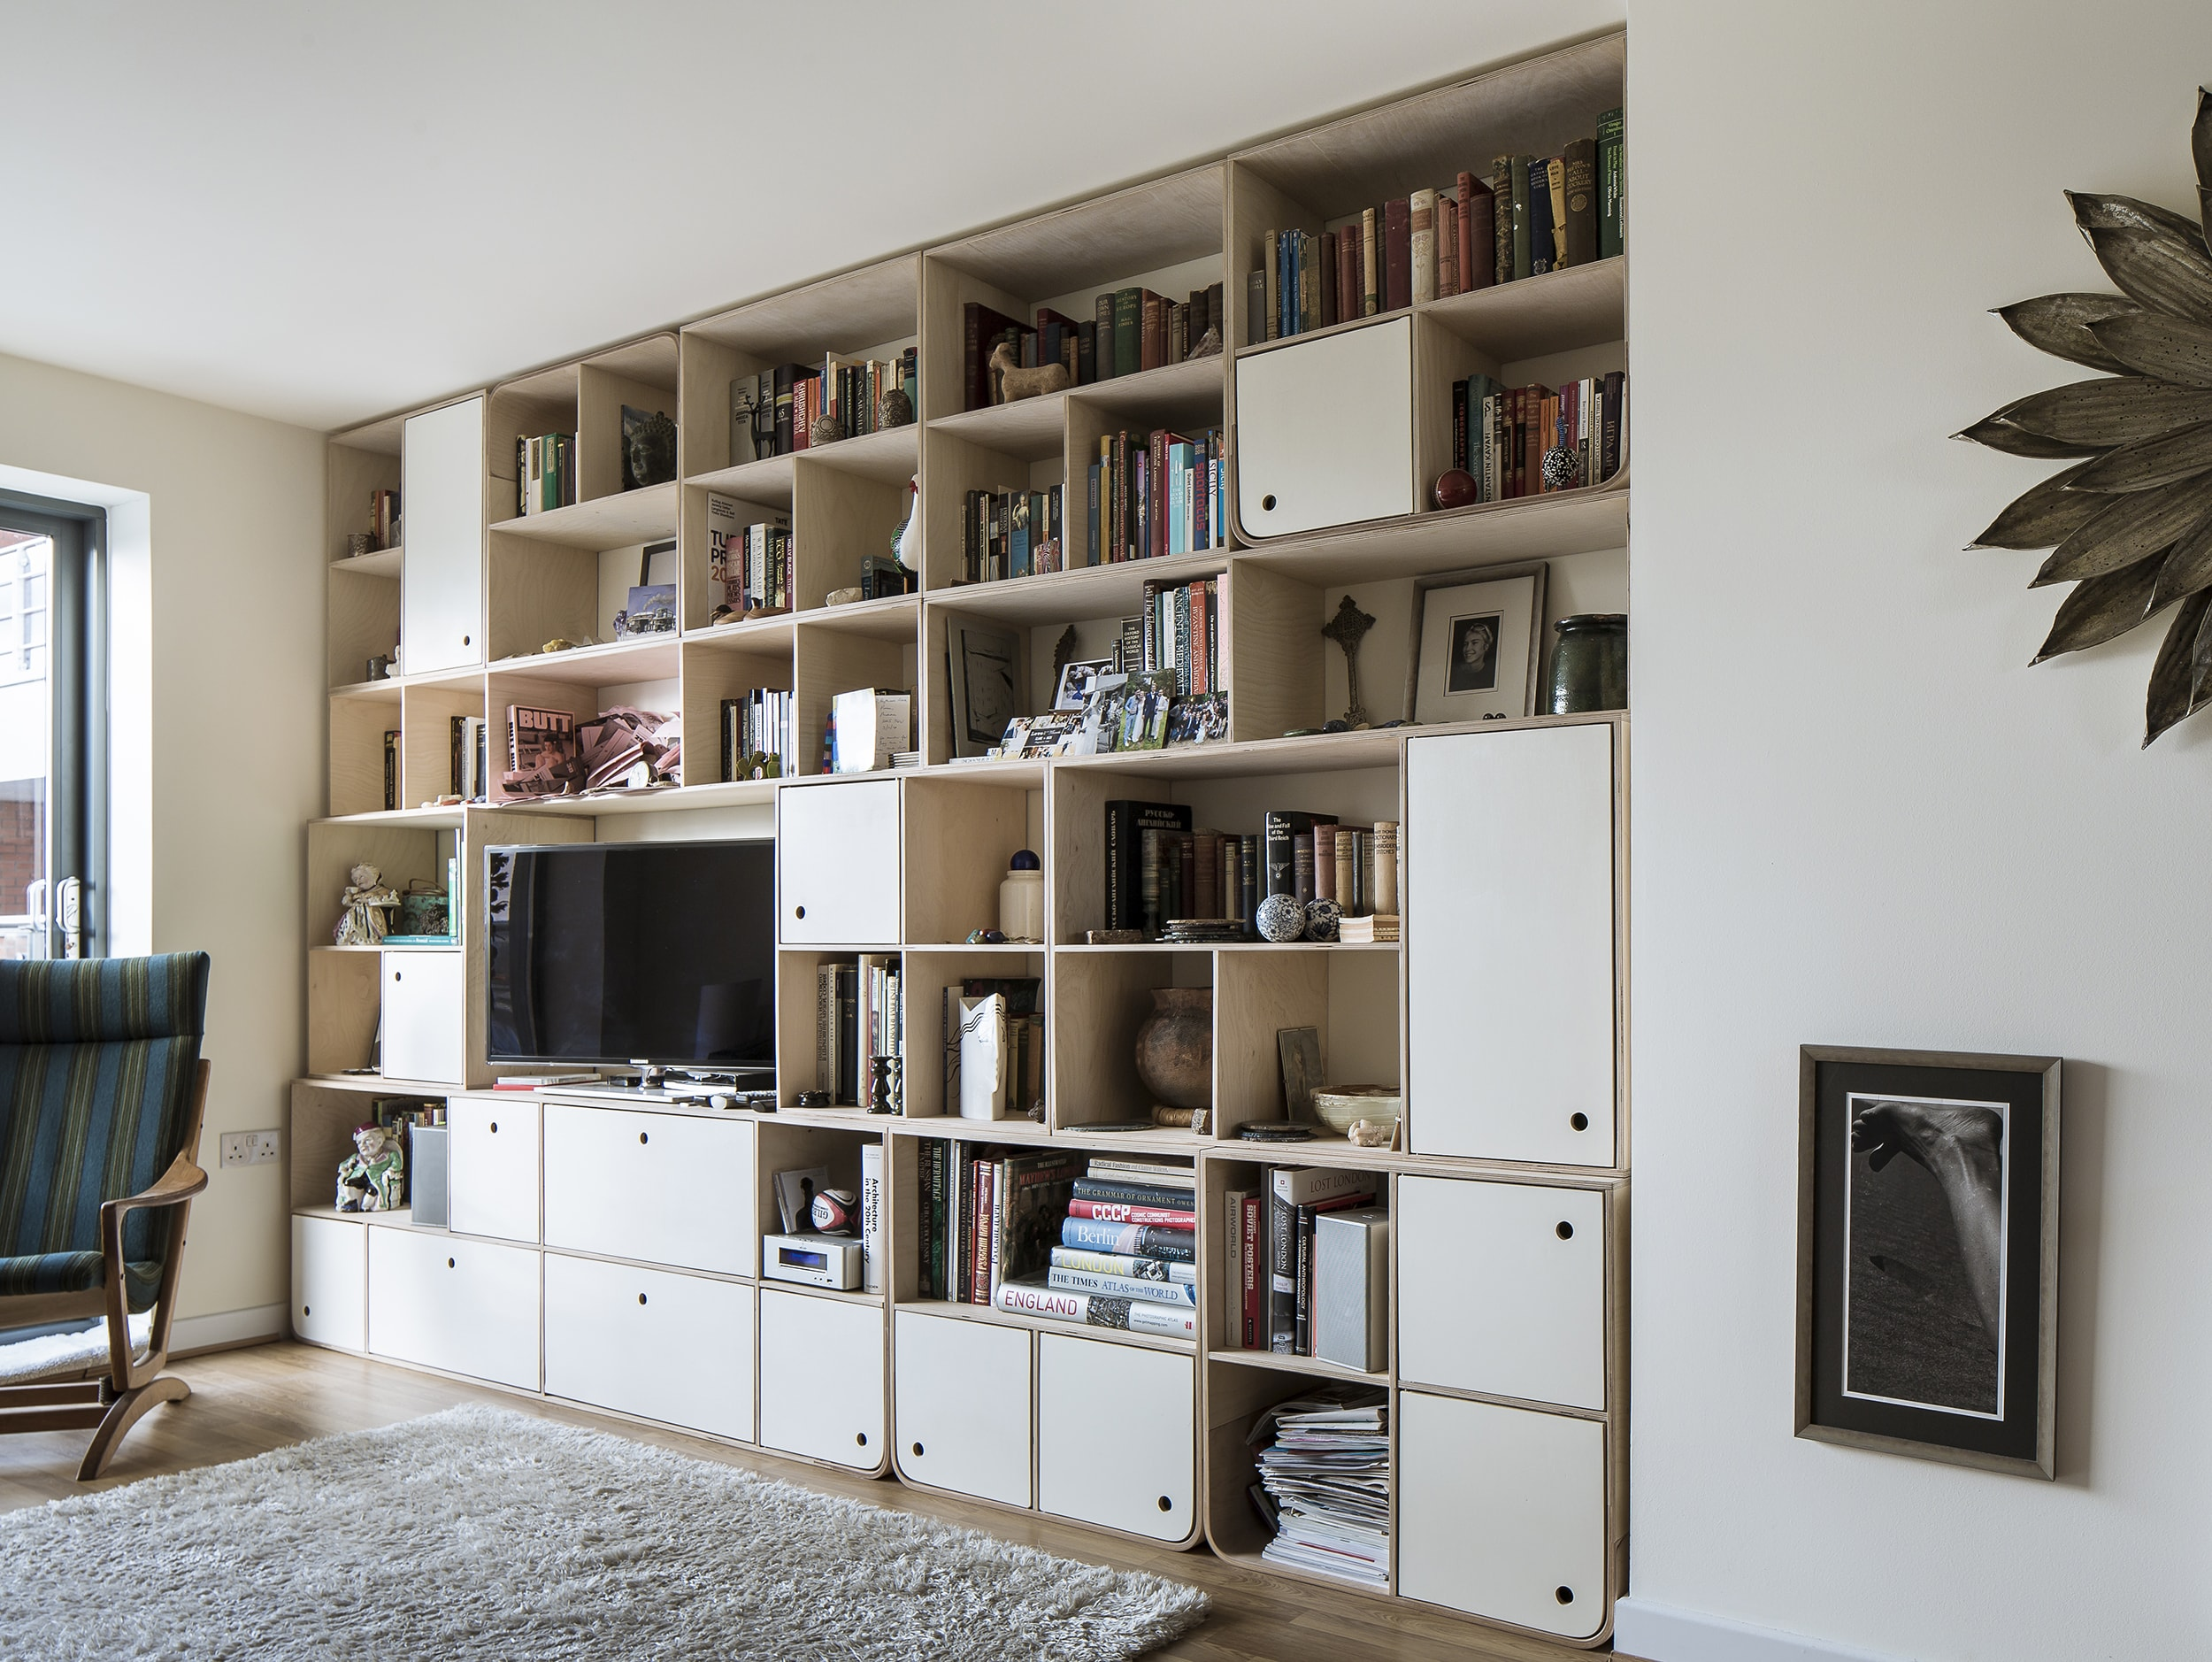 Svett bookshelves 1-min.jpg